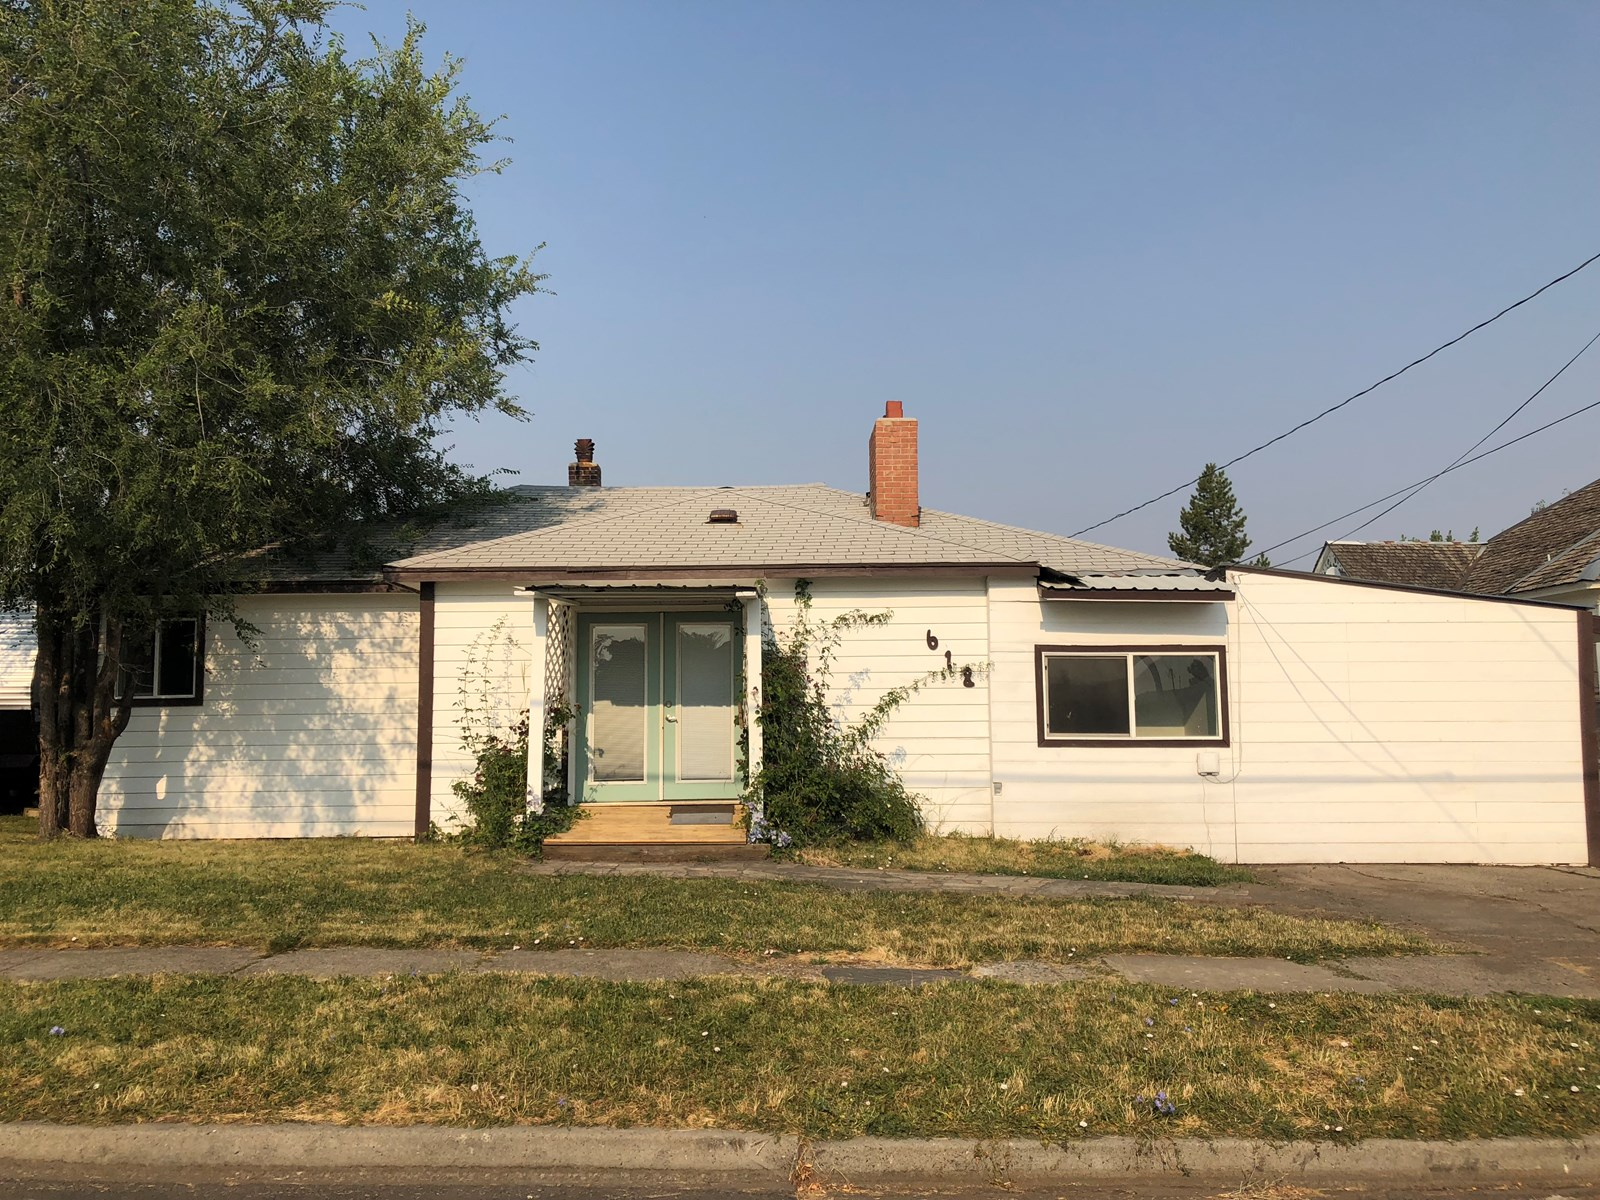 3bed/2 bath 1926 sq ft located in town